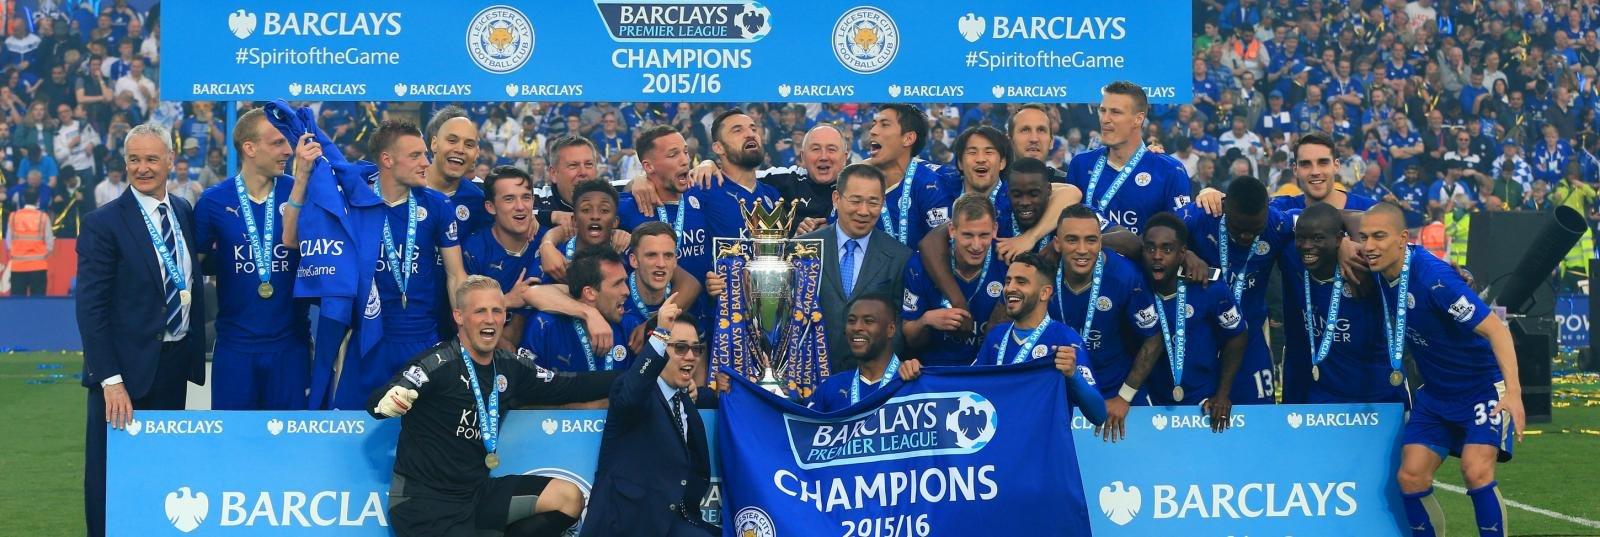 3 things we learnt from Leicester City's 2015/16 season